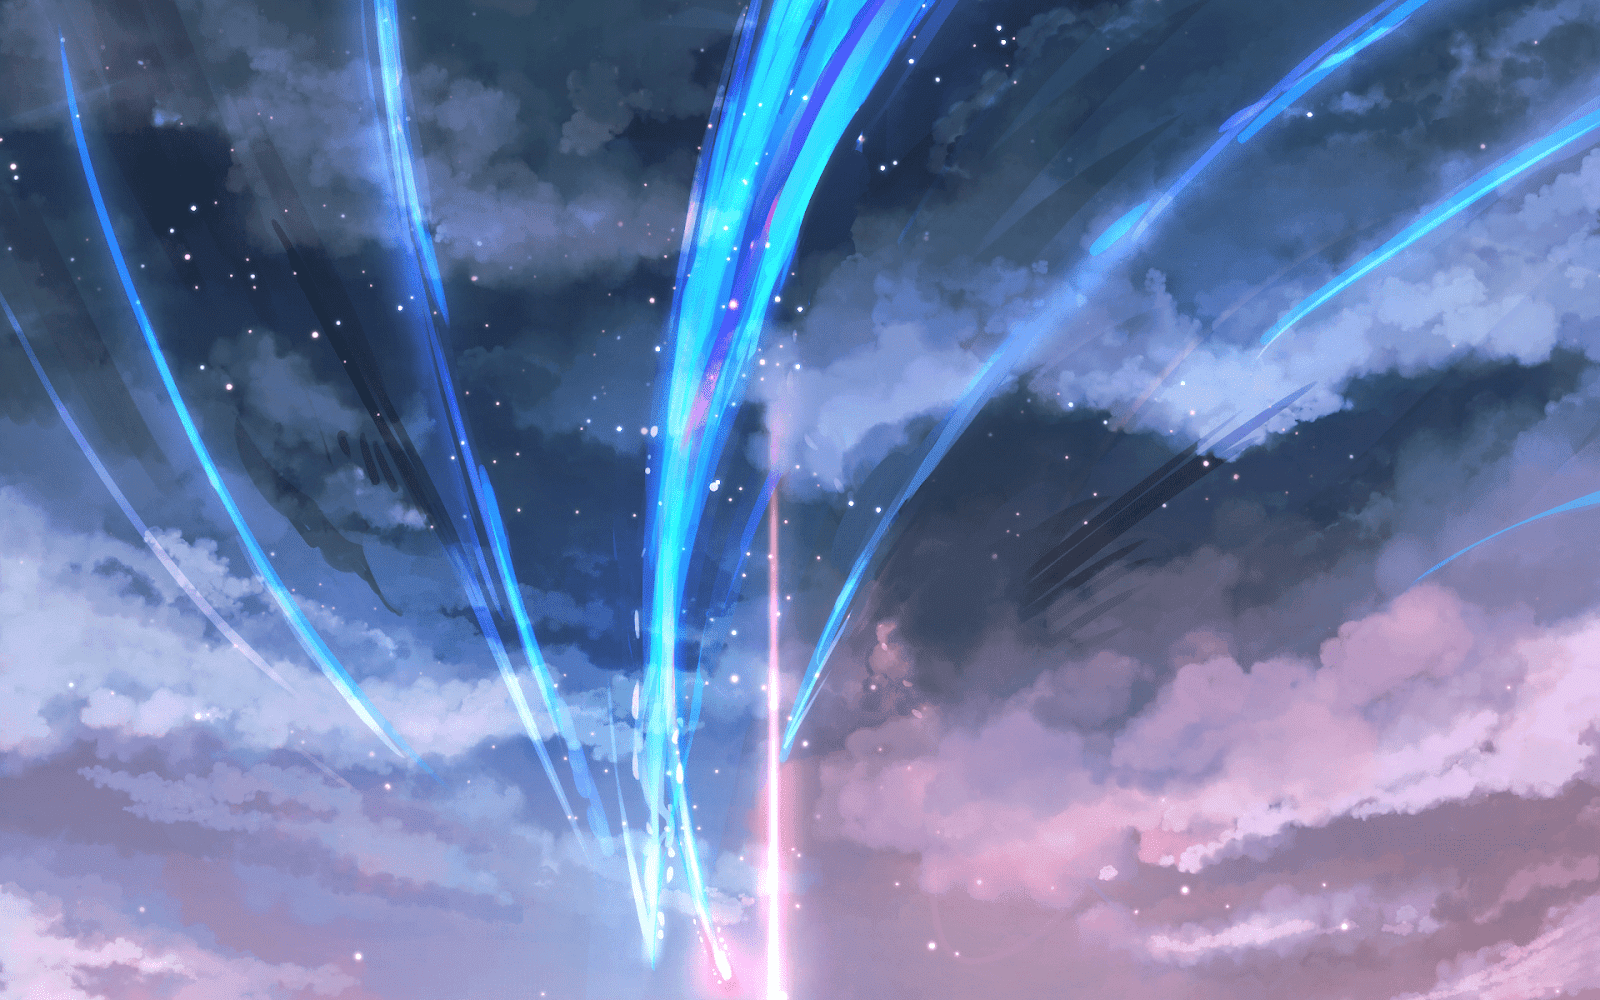 AowVN%2B%252811%2529 - [ Hình Nền ] Anime Your Name. - Kimi no Nawa full HD cực đẹp | Anime Wallpaper